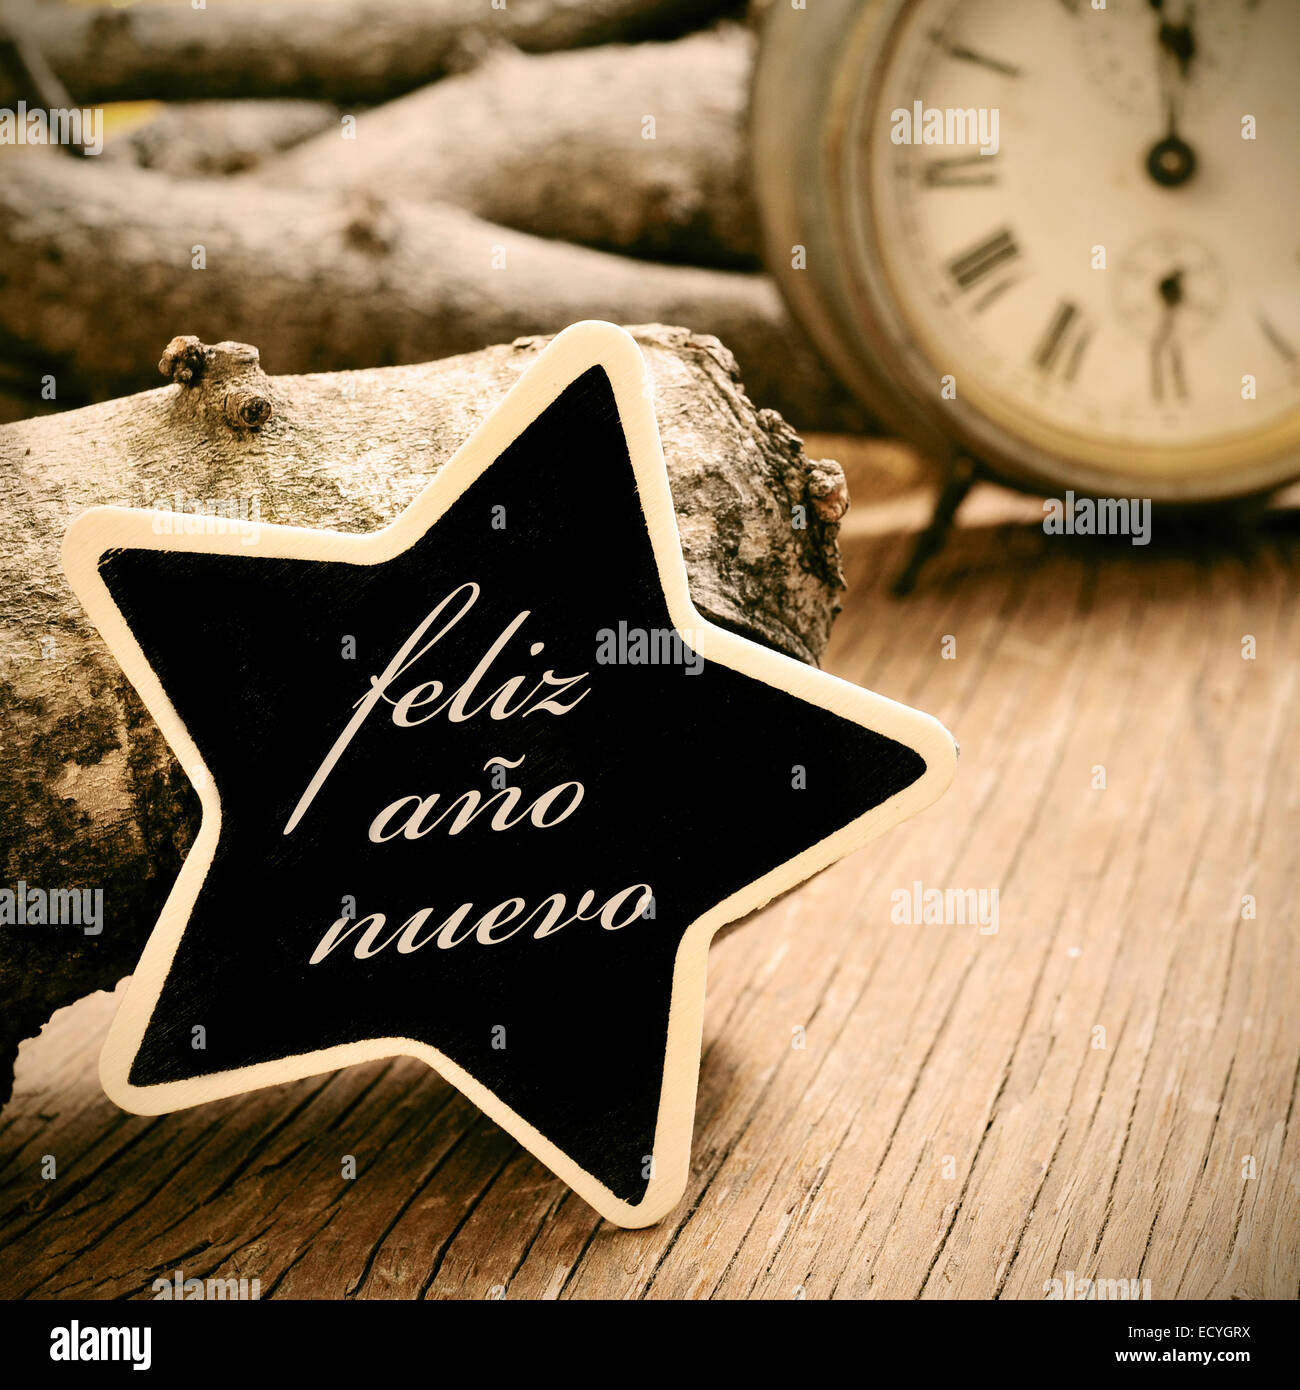 the sentence feliz ano nuevo, happy new year in spanish, written in a star-shaped chalkboard, on a rustic wooden - Stock Image